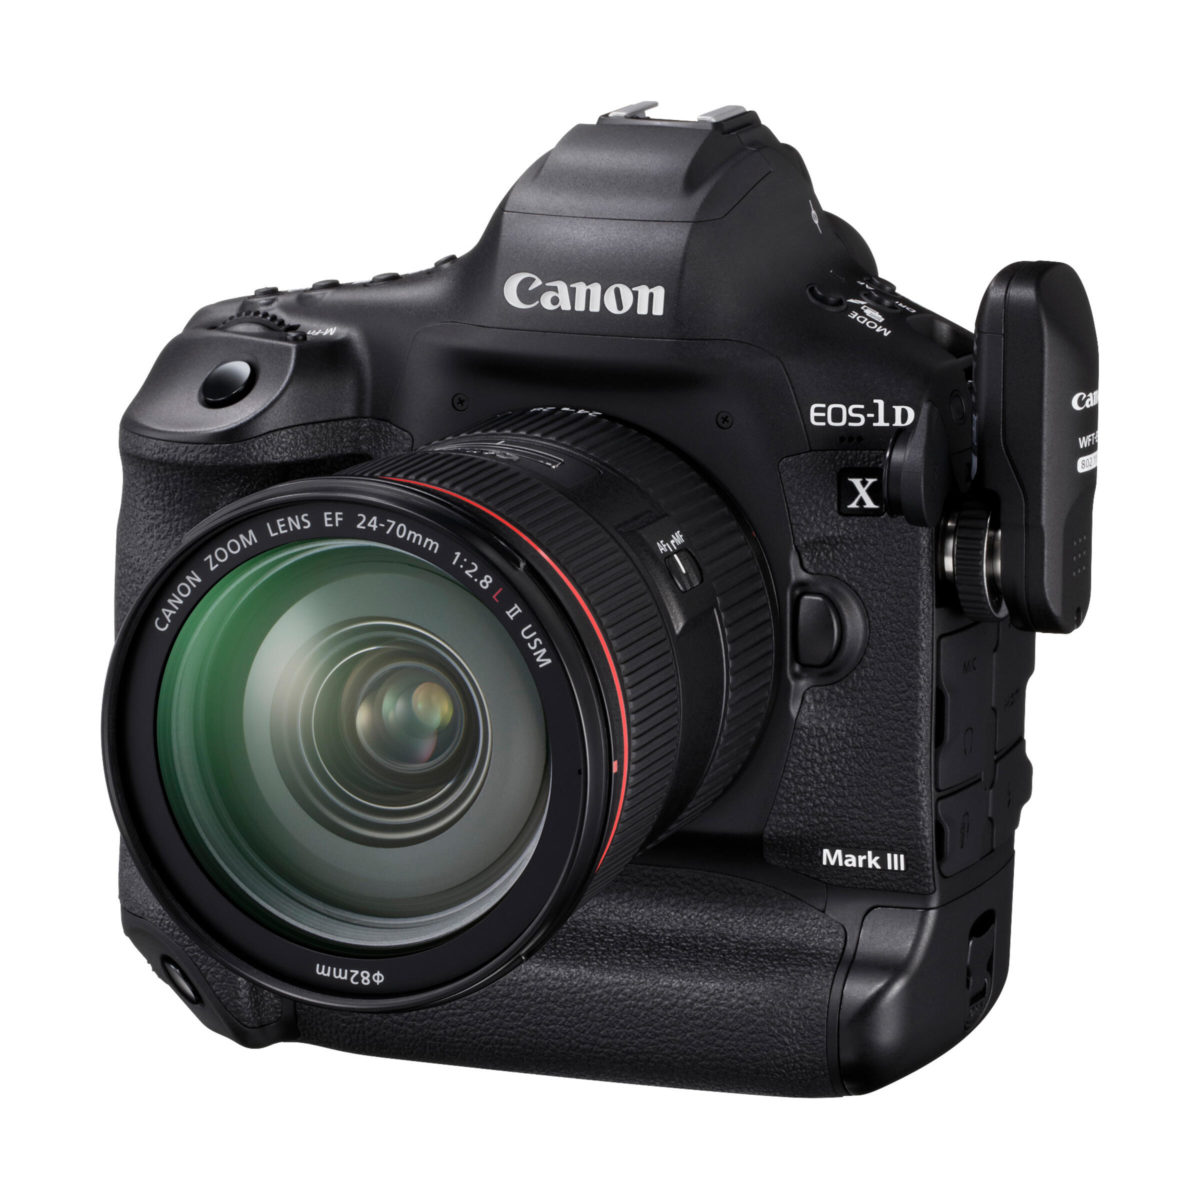 canon_eos_1d_x_mark_iii_body_08